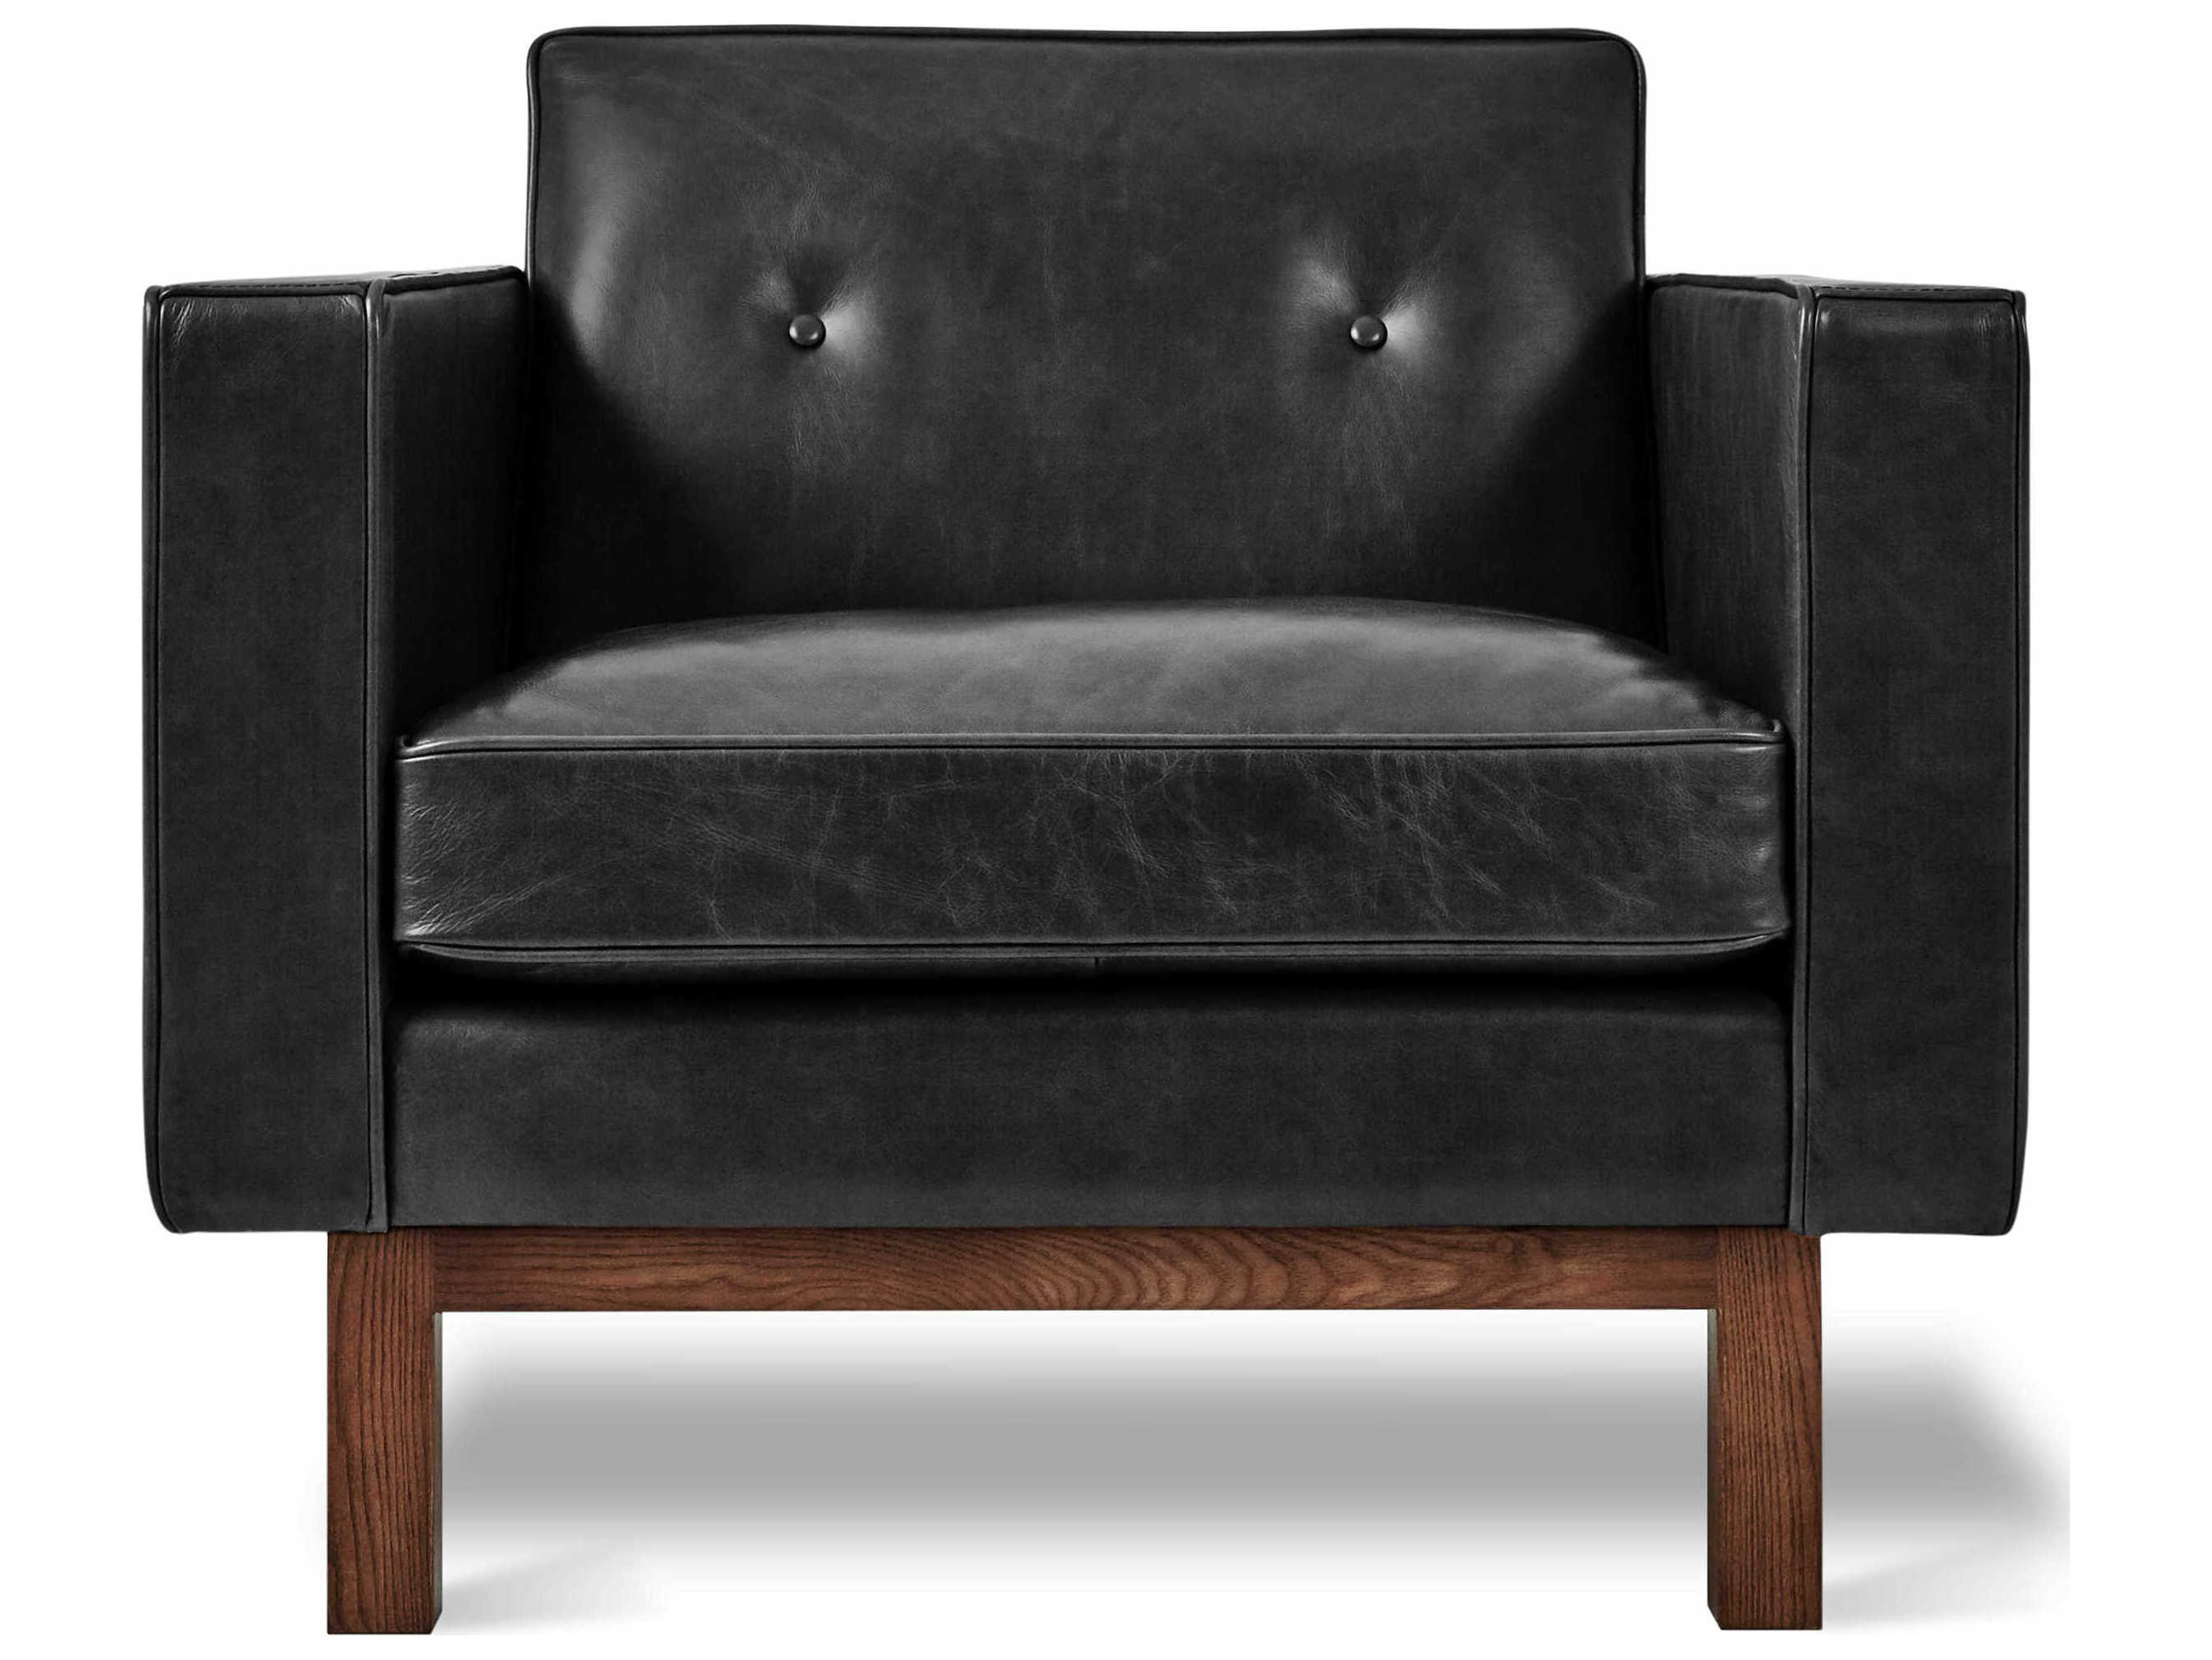 Incredible Gus Modern Embassy Club Chair Ibusinesslaw Wood Chair Design Ideas Ibusinesslaworg